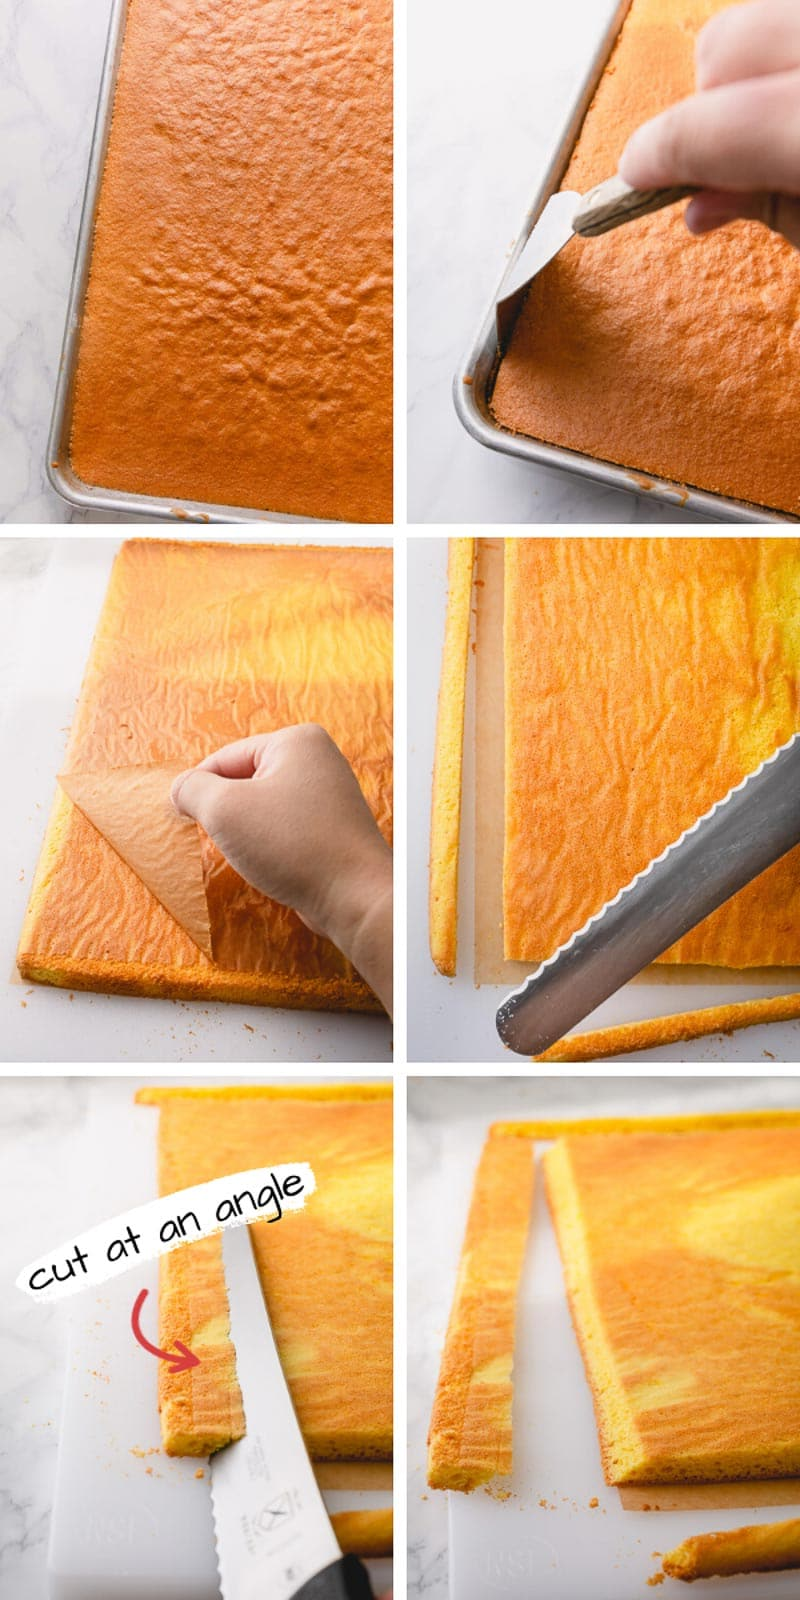 How to cut a sponge cake to make a perfect roll cake. This quick tip helps the cake stand stable. #rollcake #spongecake